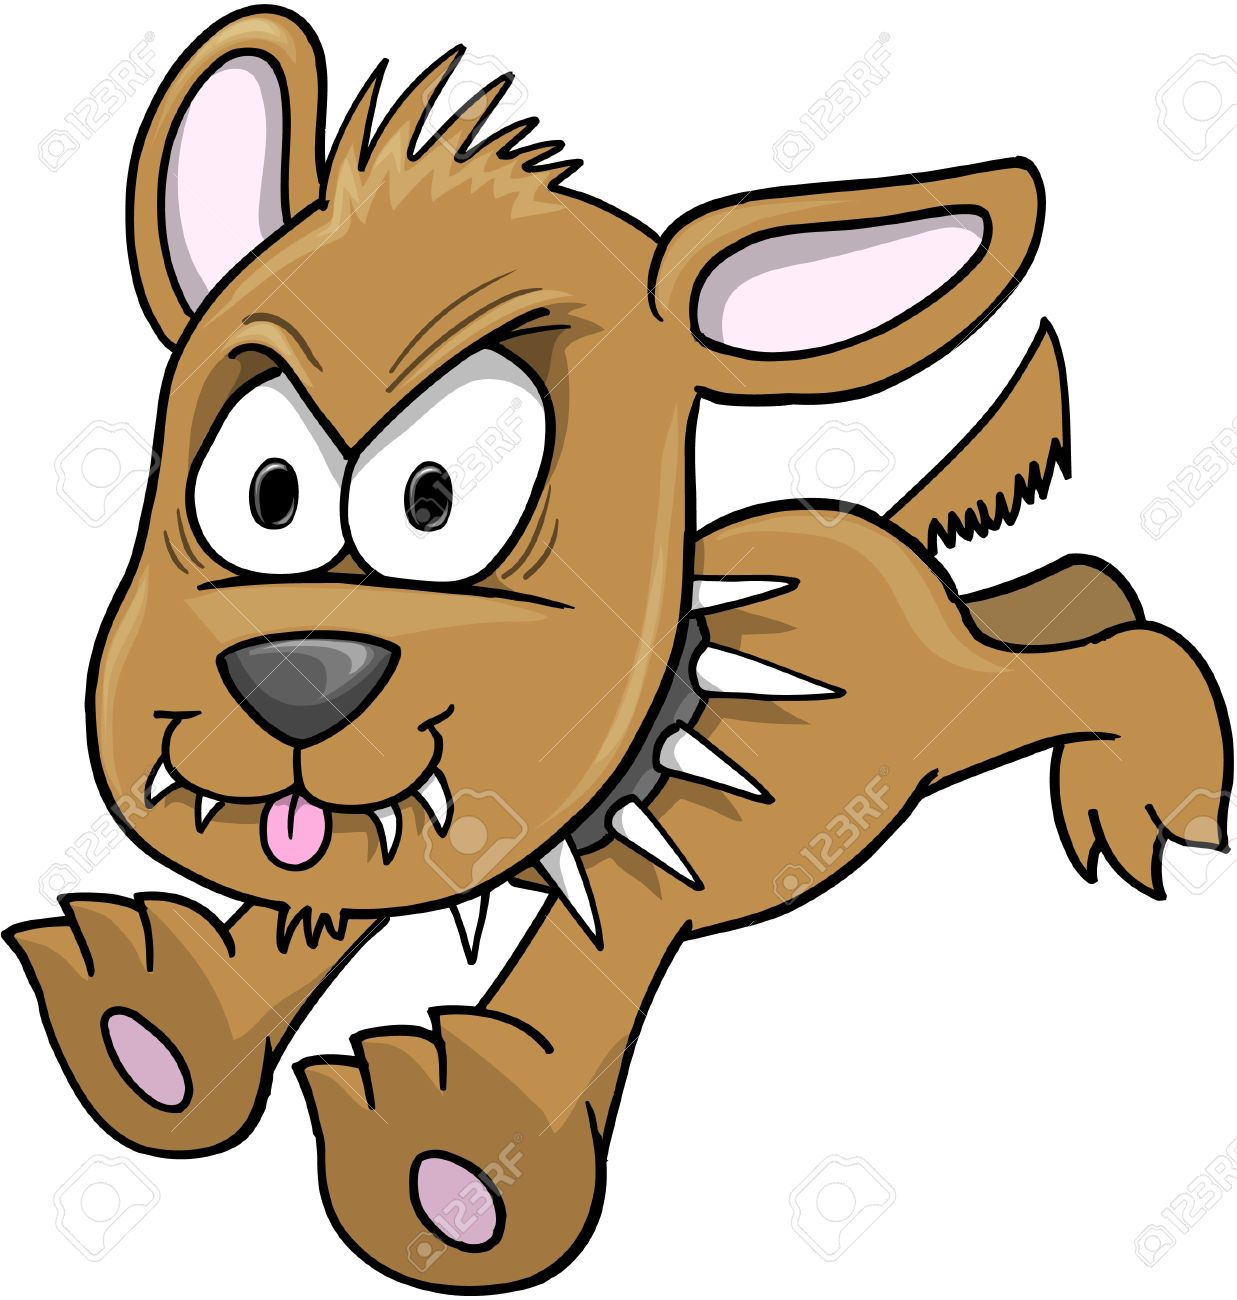 Mean Dog Cartoon Clipart.